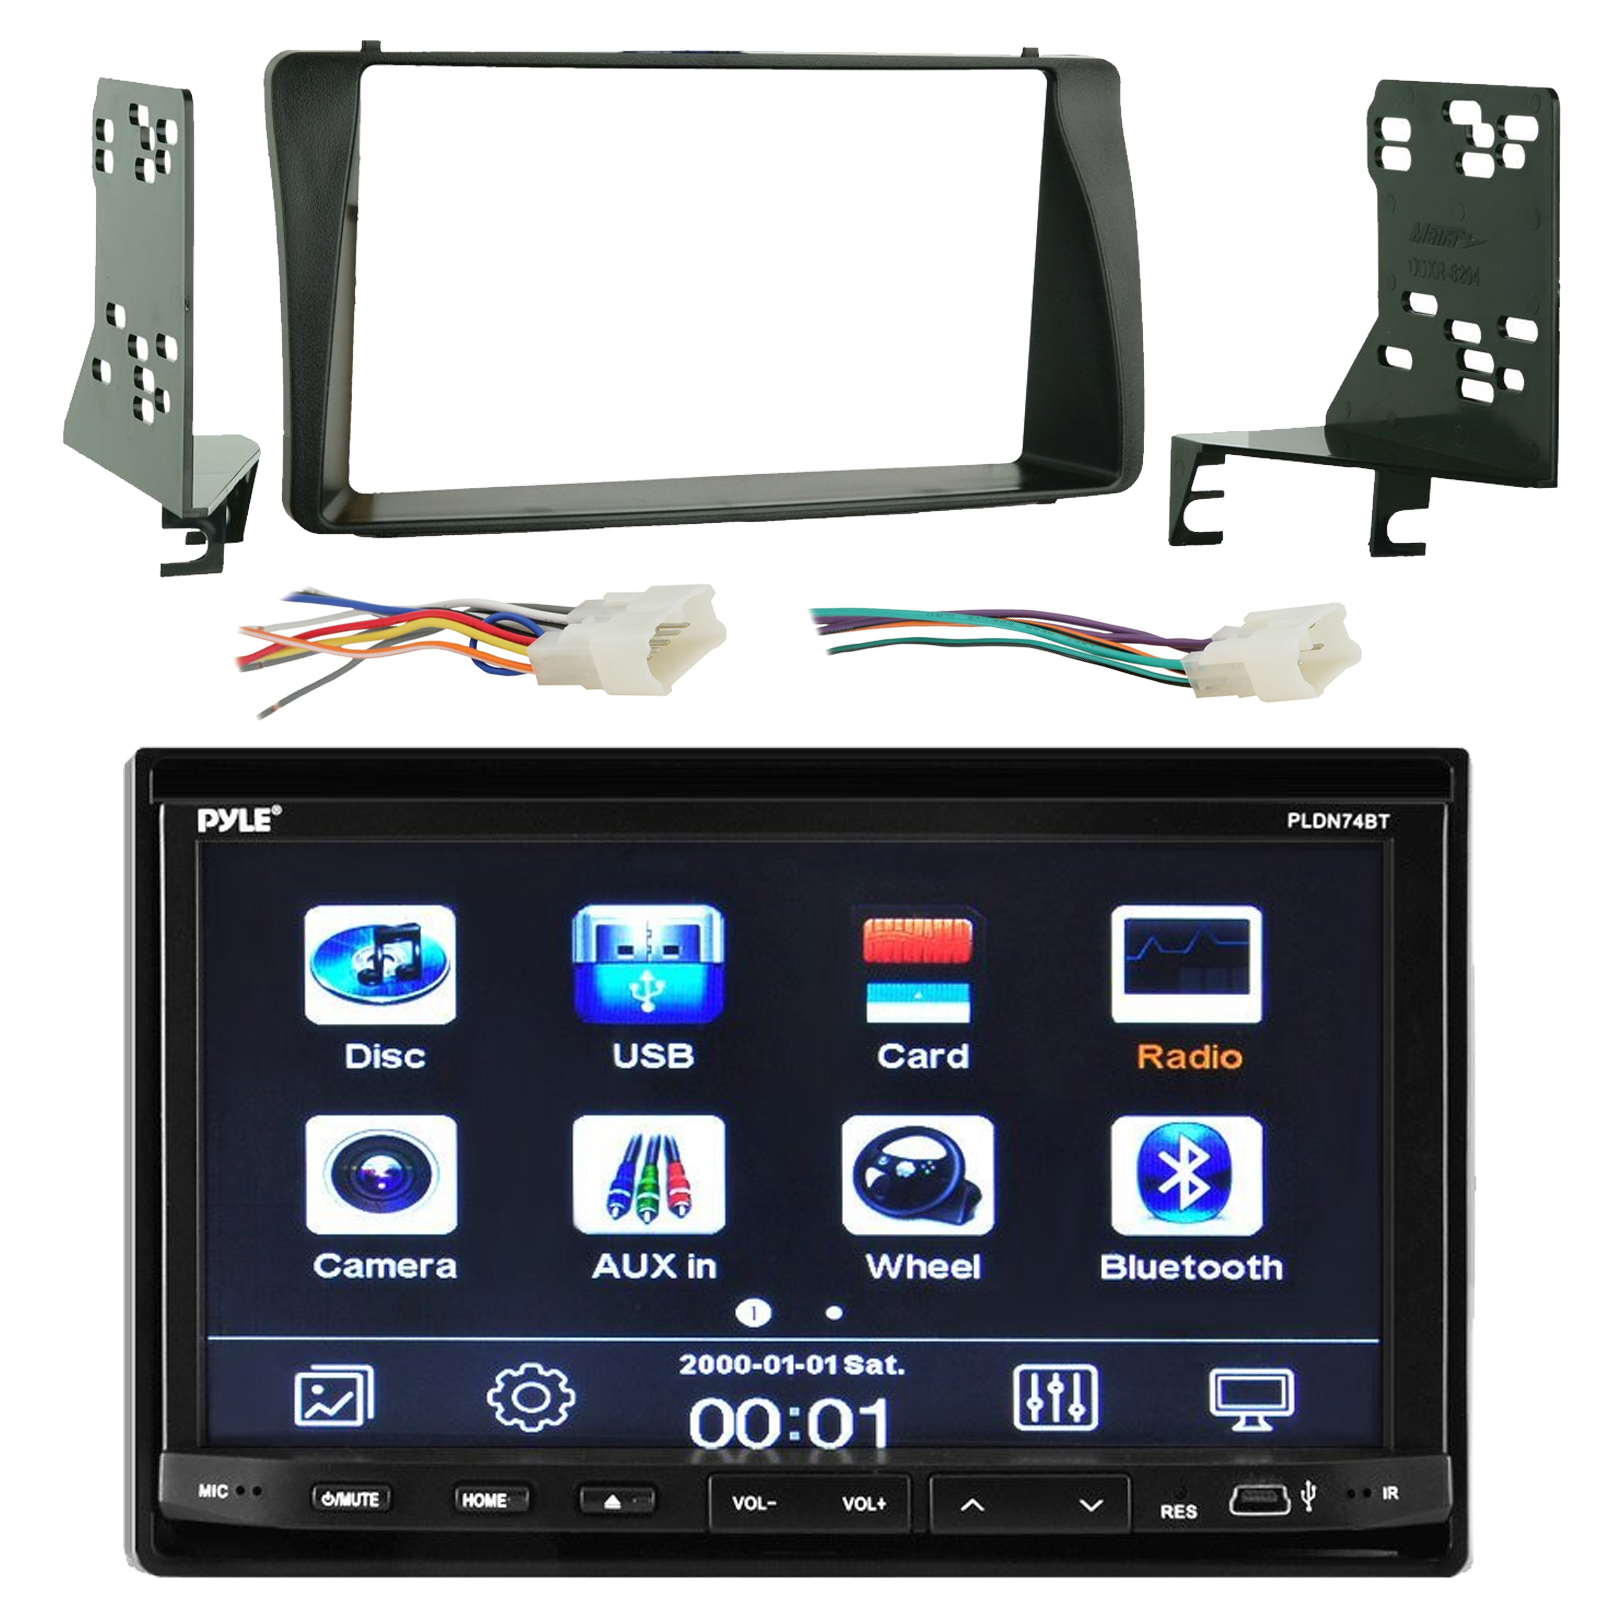 pyle pldn74bt 7 touch screen bluetooth cd dvd player stereo rh walmart com Pioneer Double Din Wiring-Diagram Pyle Waterproof Speaker Wiring Diagram